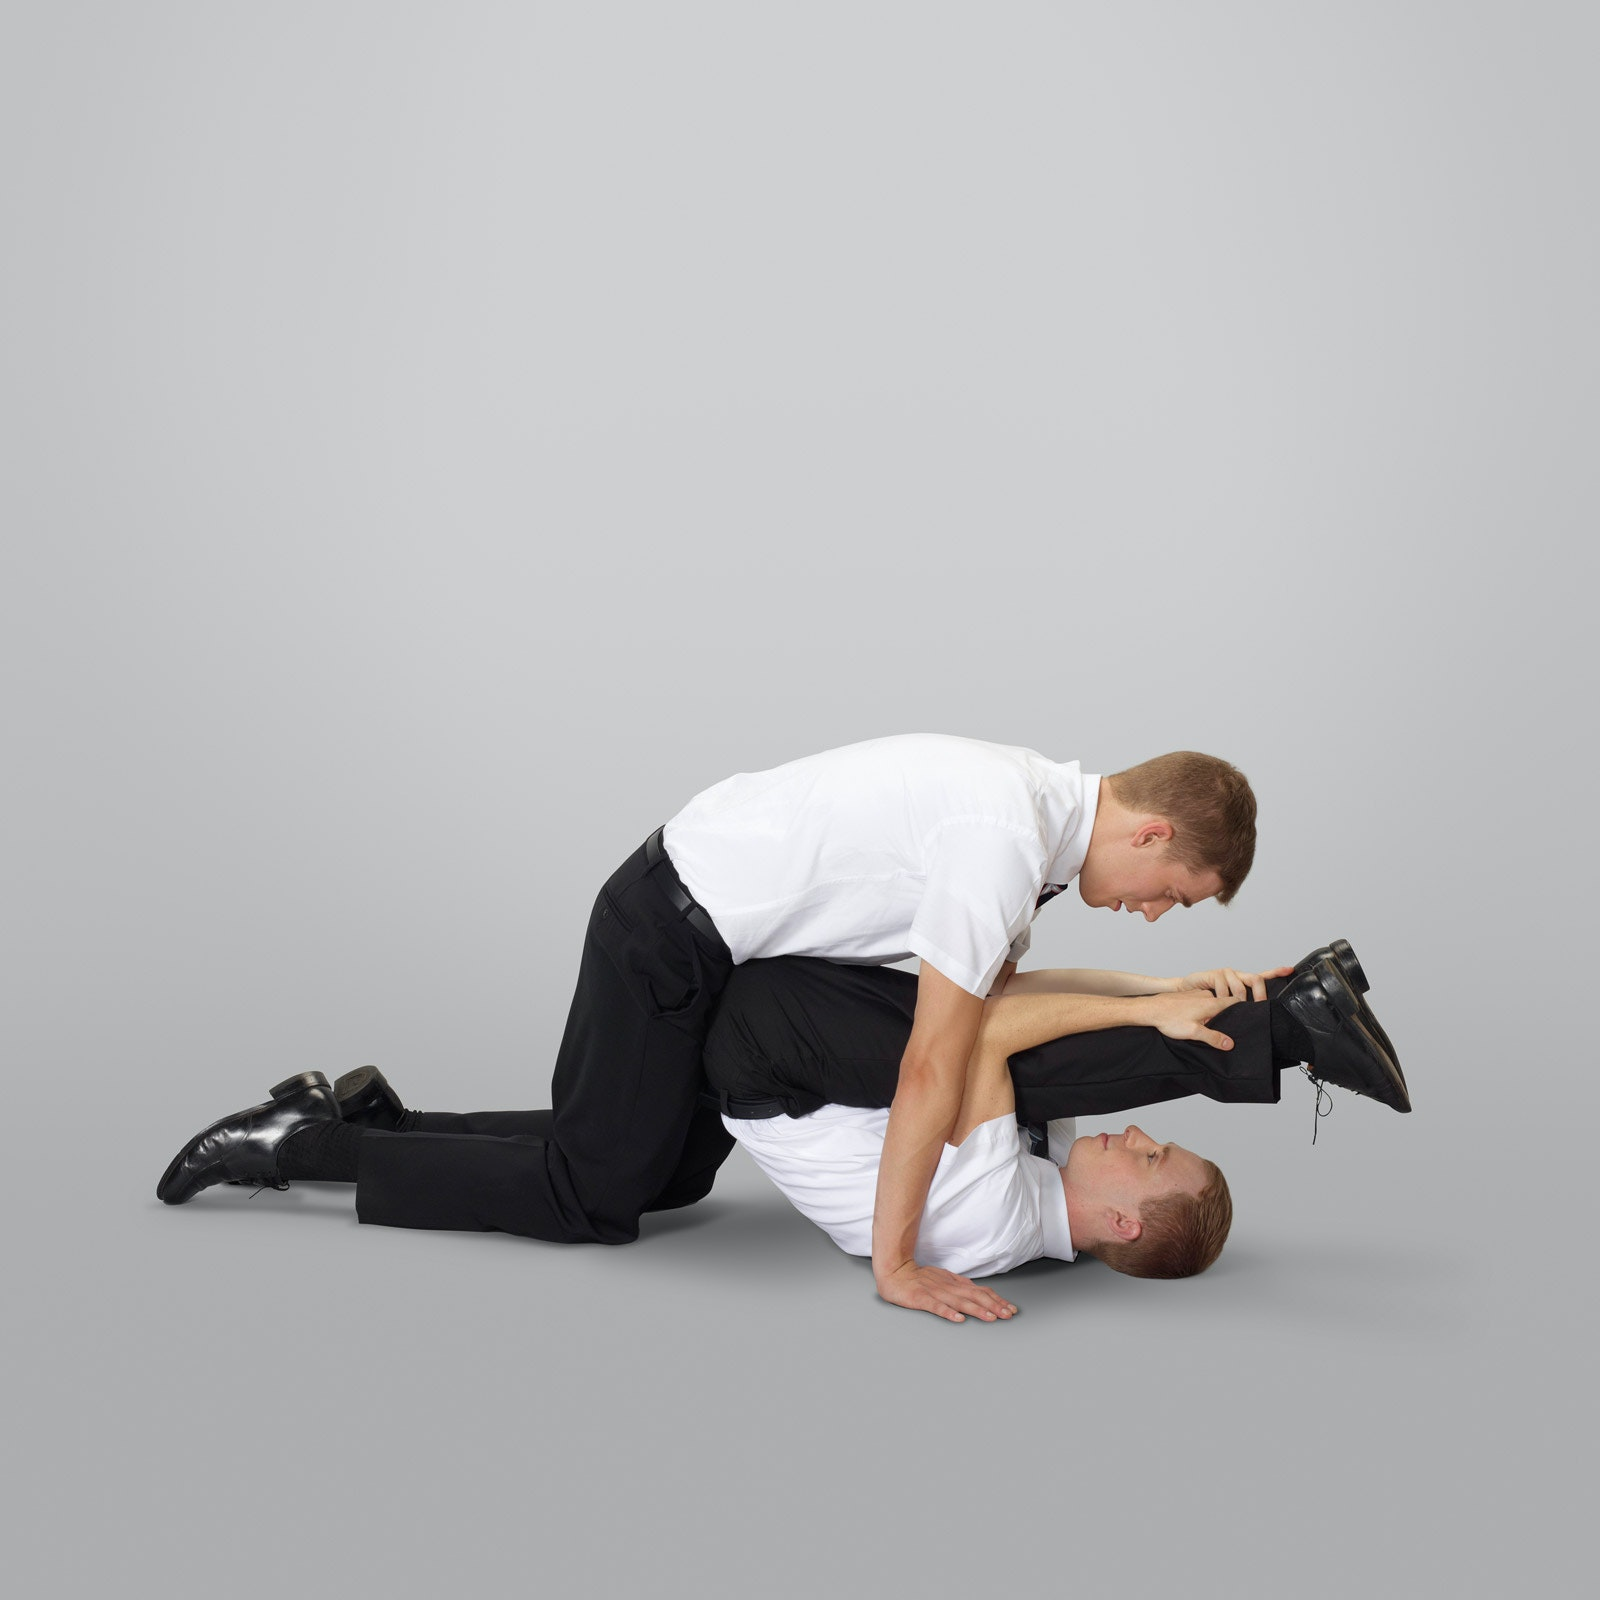 M90 missionary position